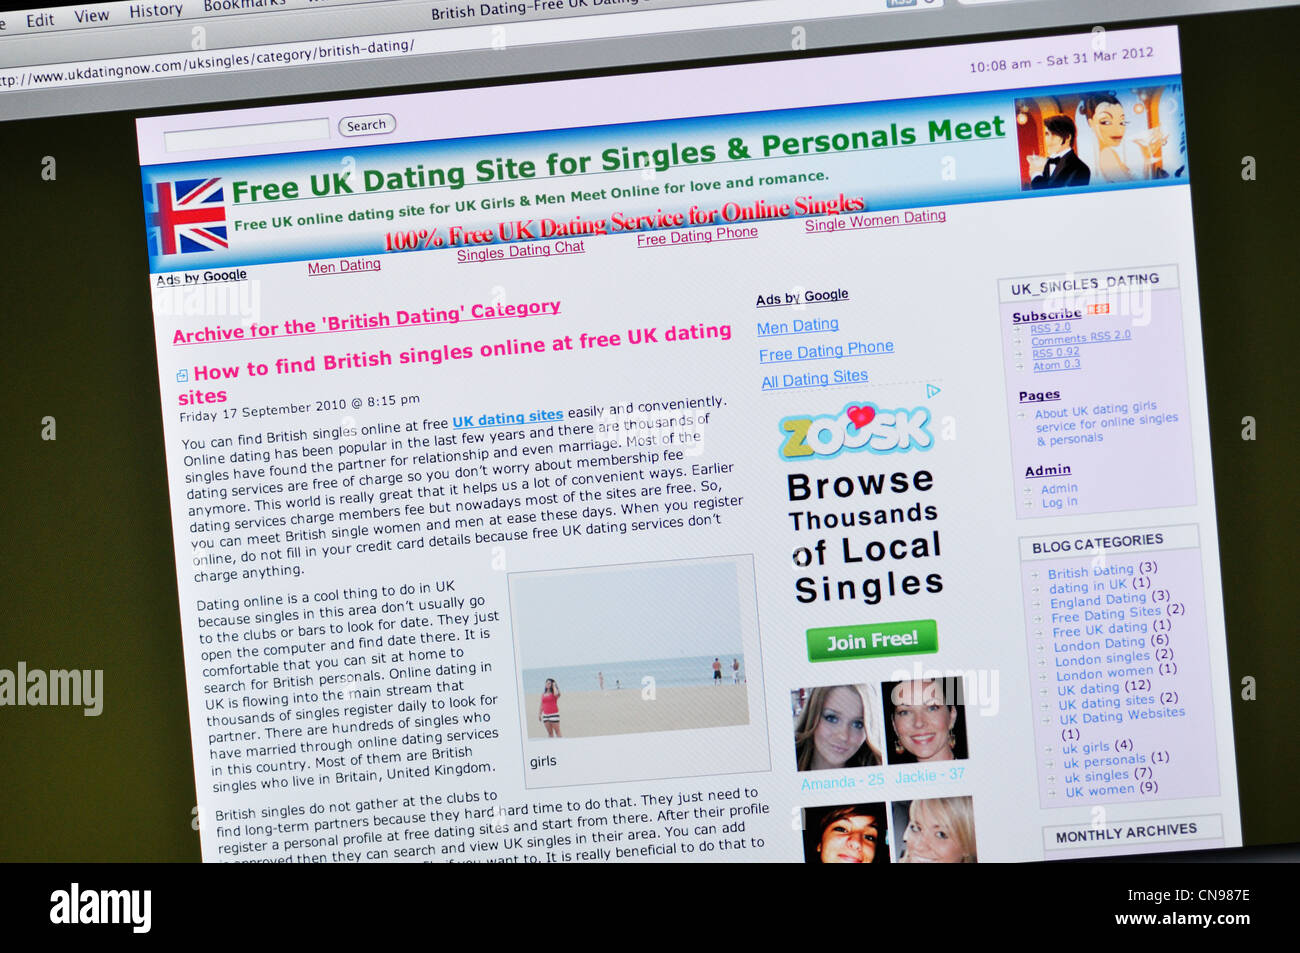 Dating website categories